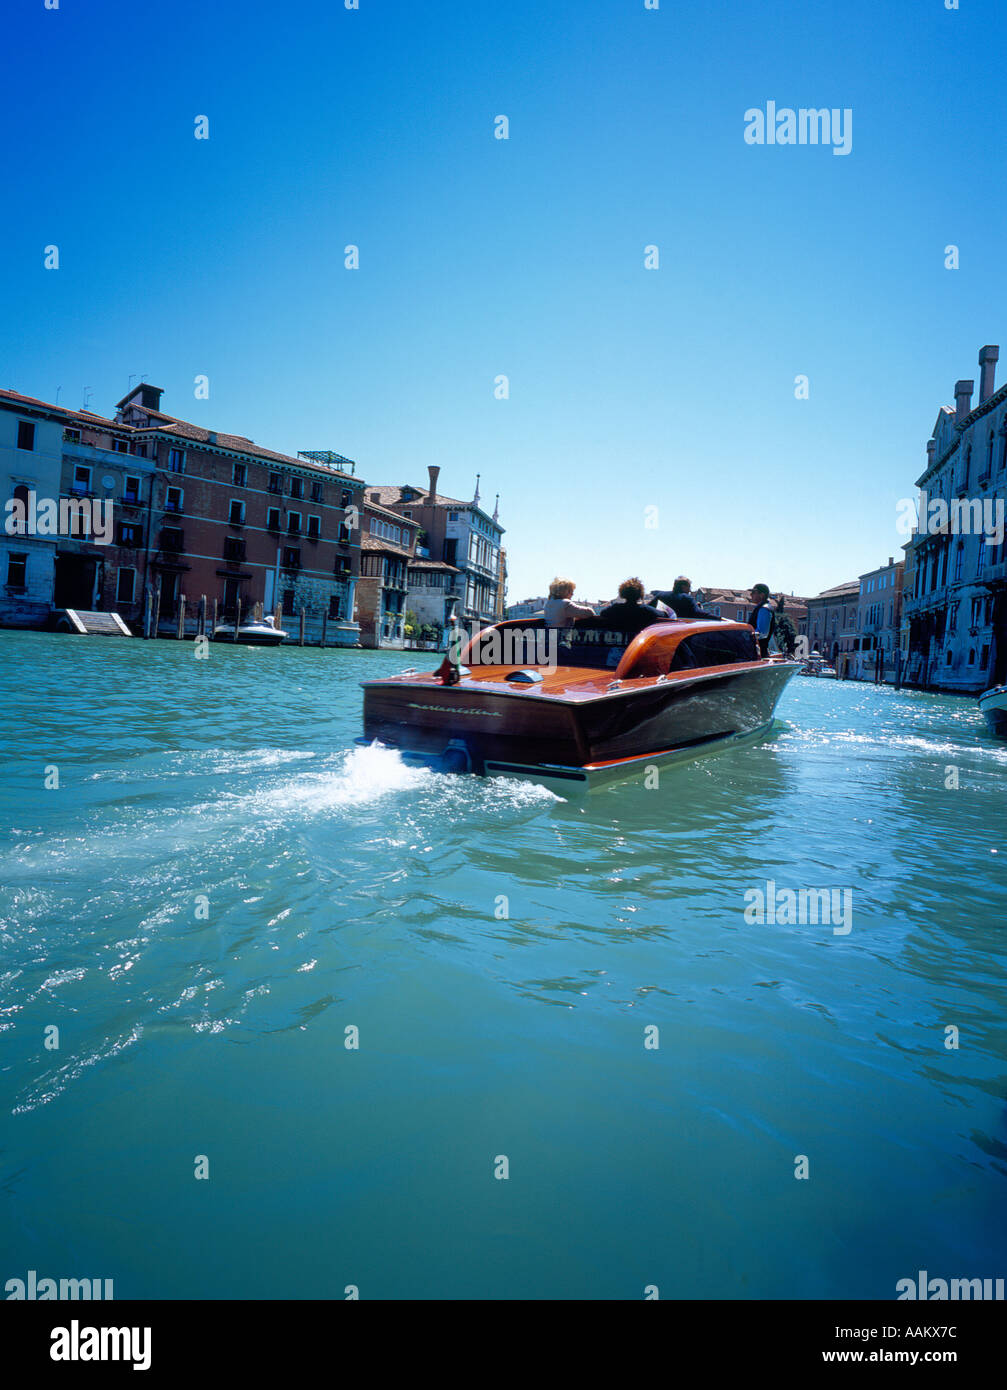 motor boat at Canal Grande Venice Italy Europe. Photo by Willy Matheisl Stock Photo